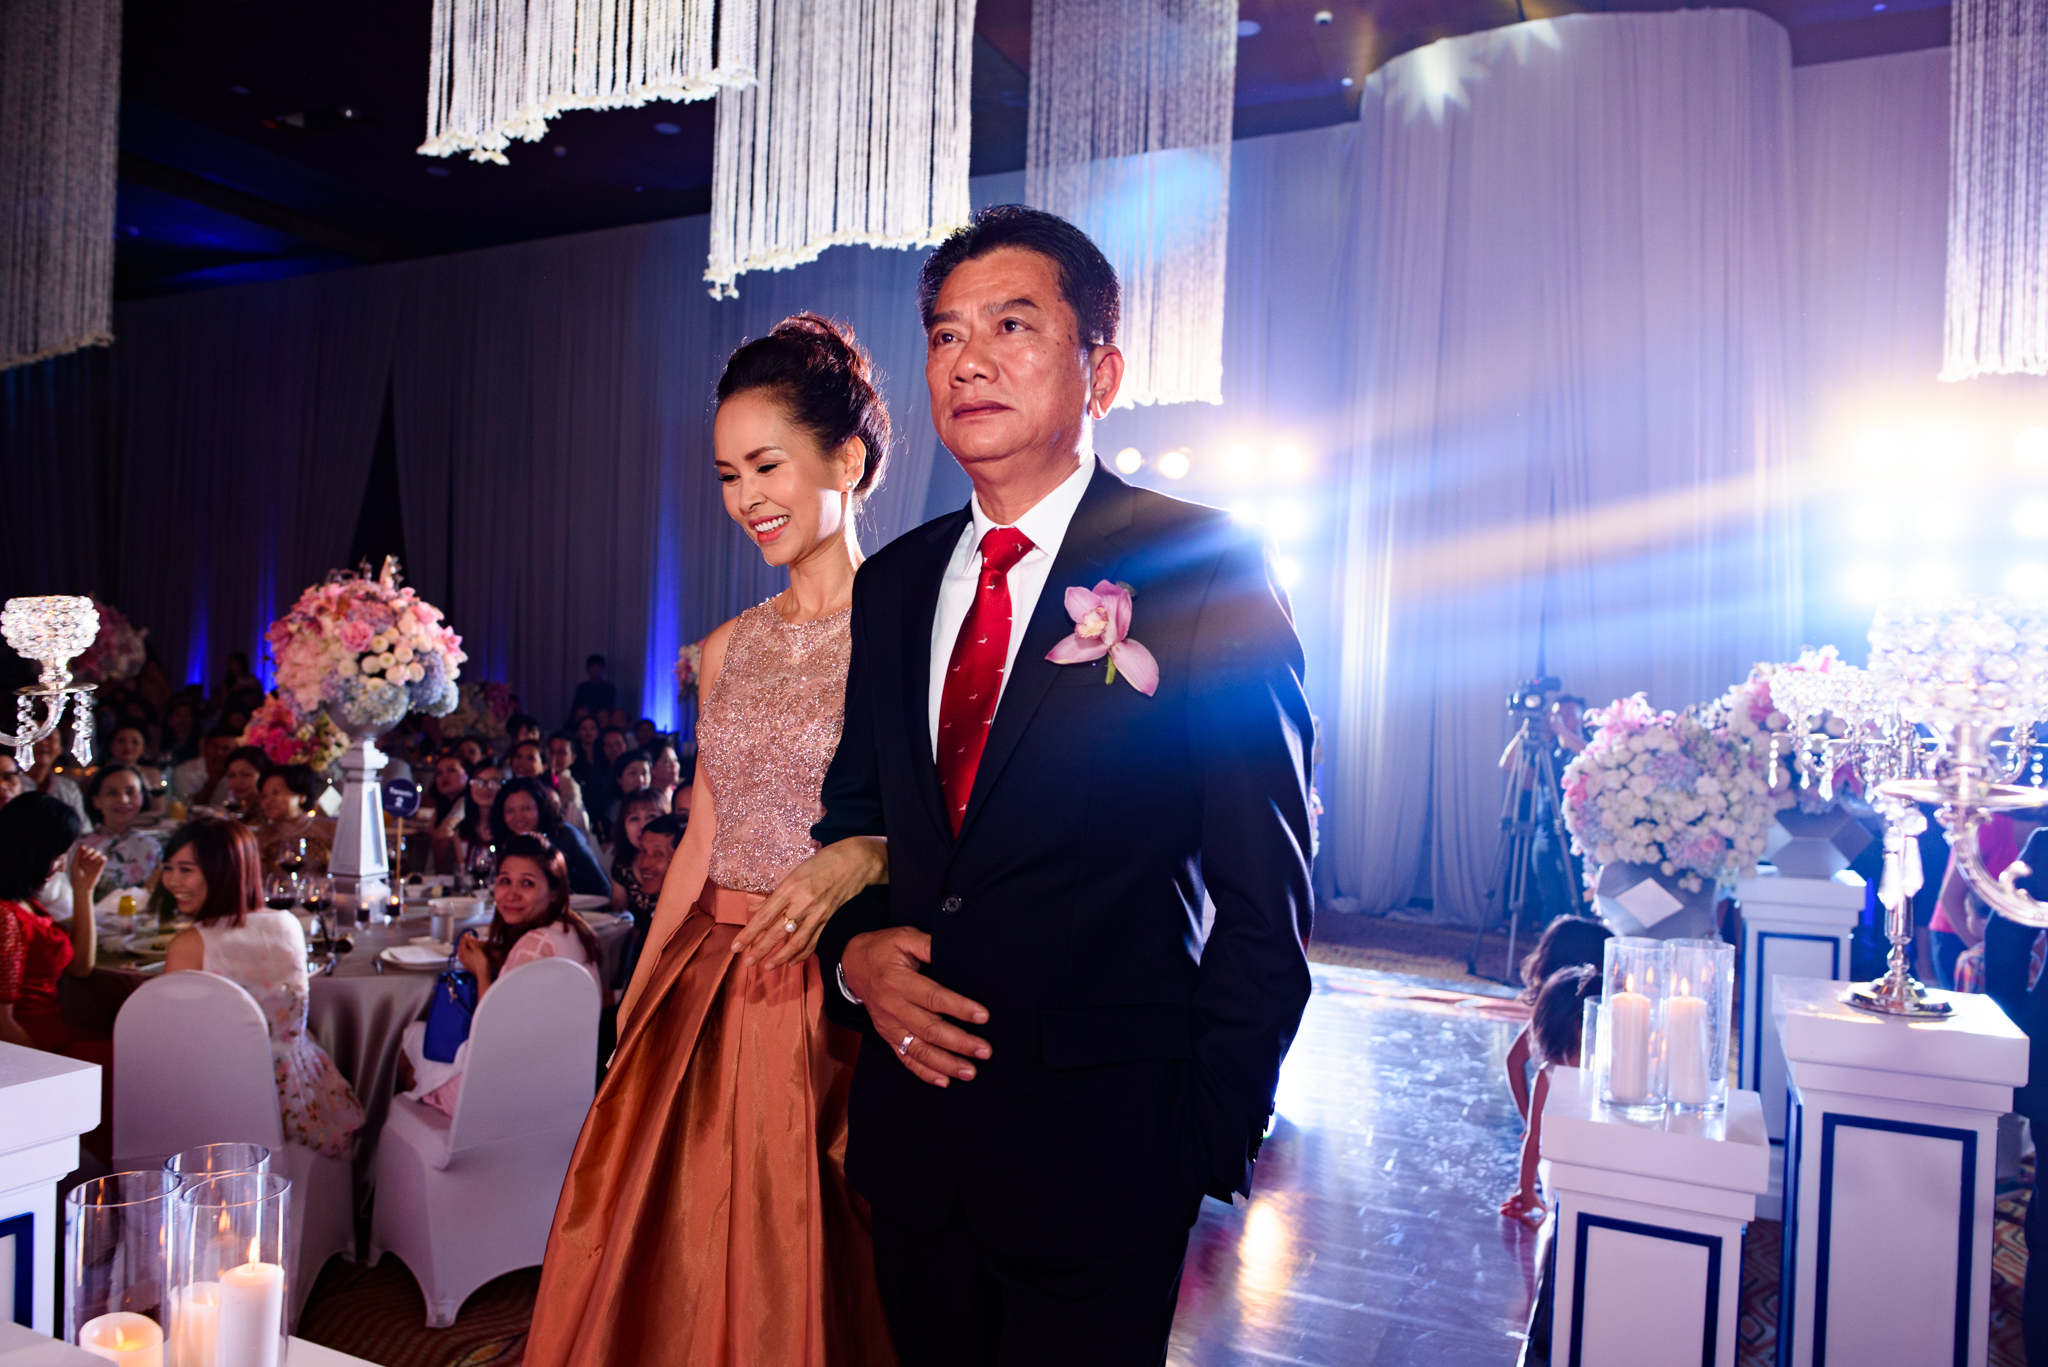 Thang-Thuy ceremony-662.jpg